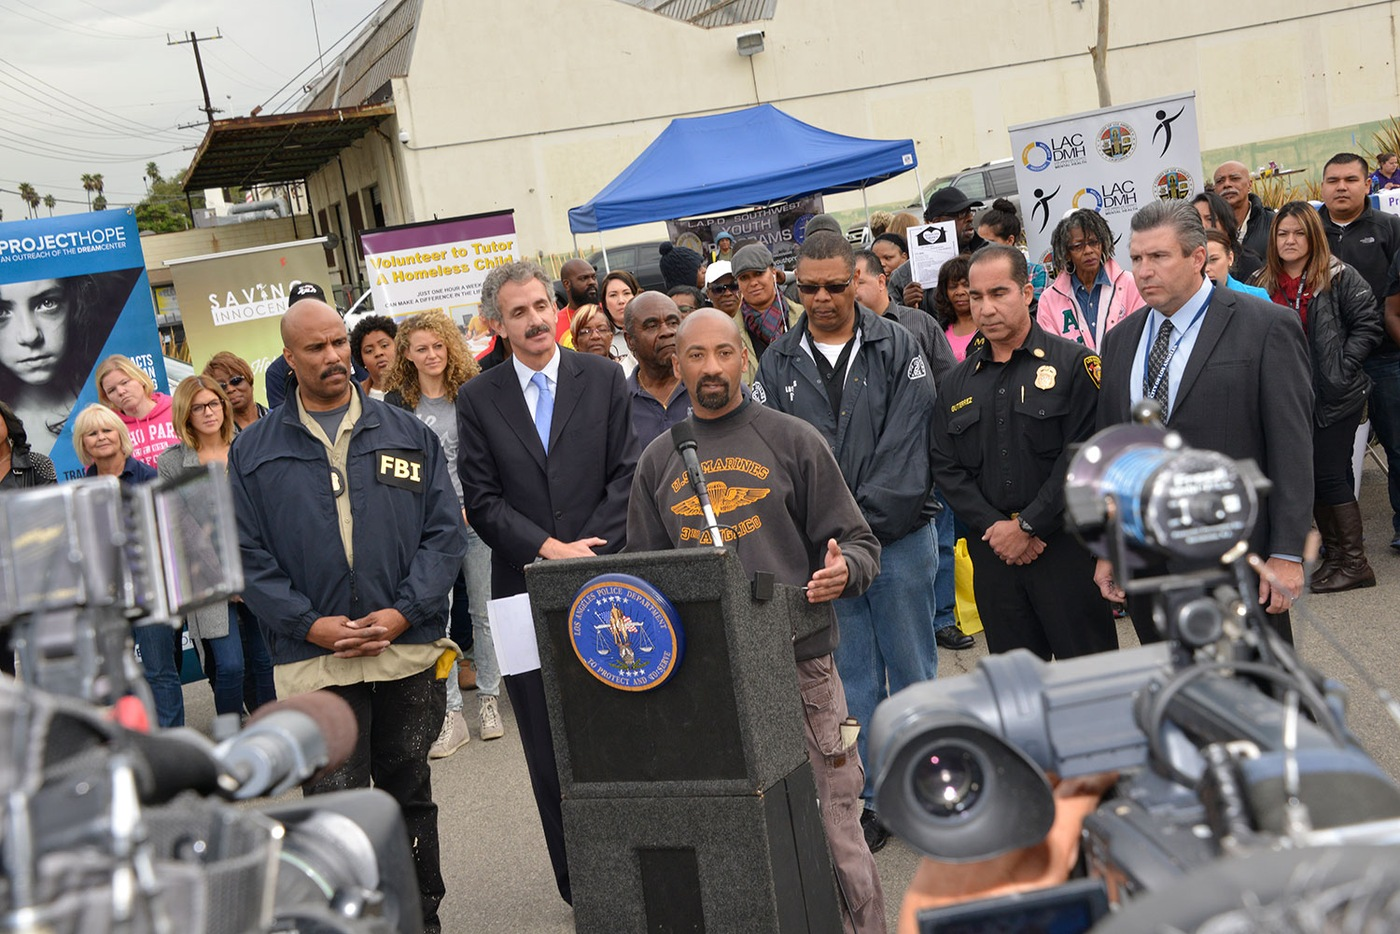 Los Angeles Police Department Detective Cedric Washington discusses the Community Impact Initiative as FBI Los Angeles Assistant Special Agent in Charge Robert Clark (far left) and other partners look on.